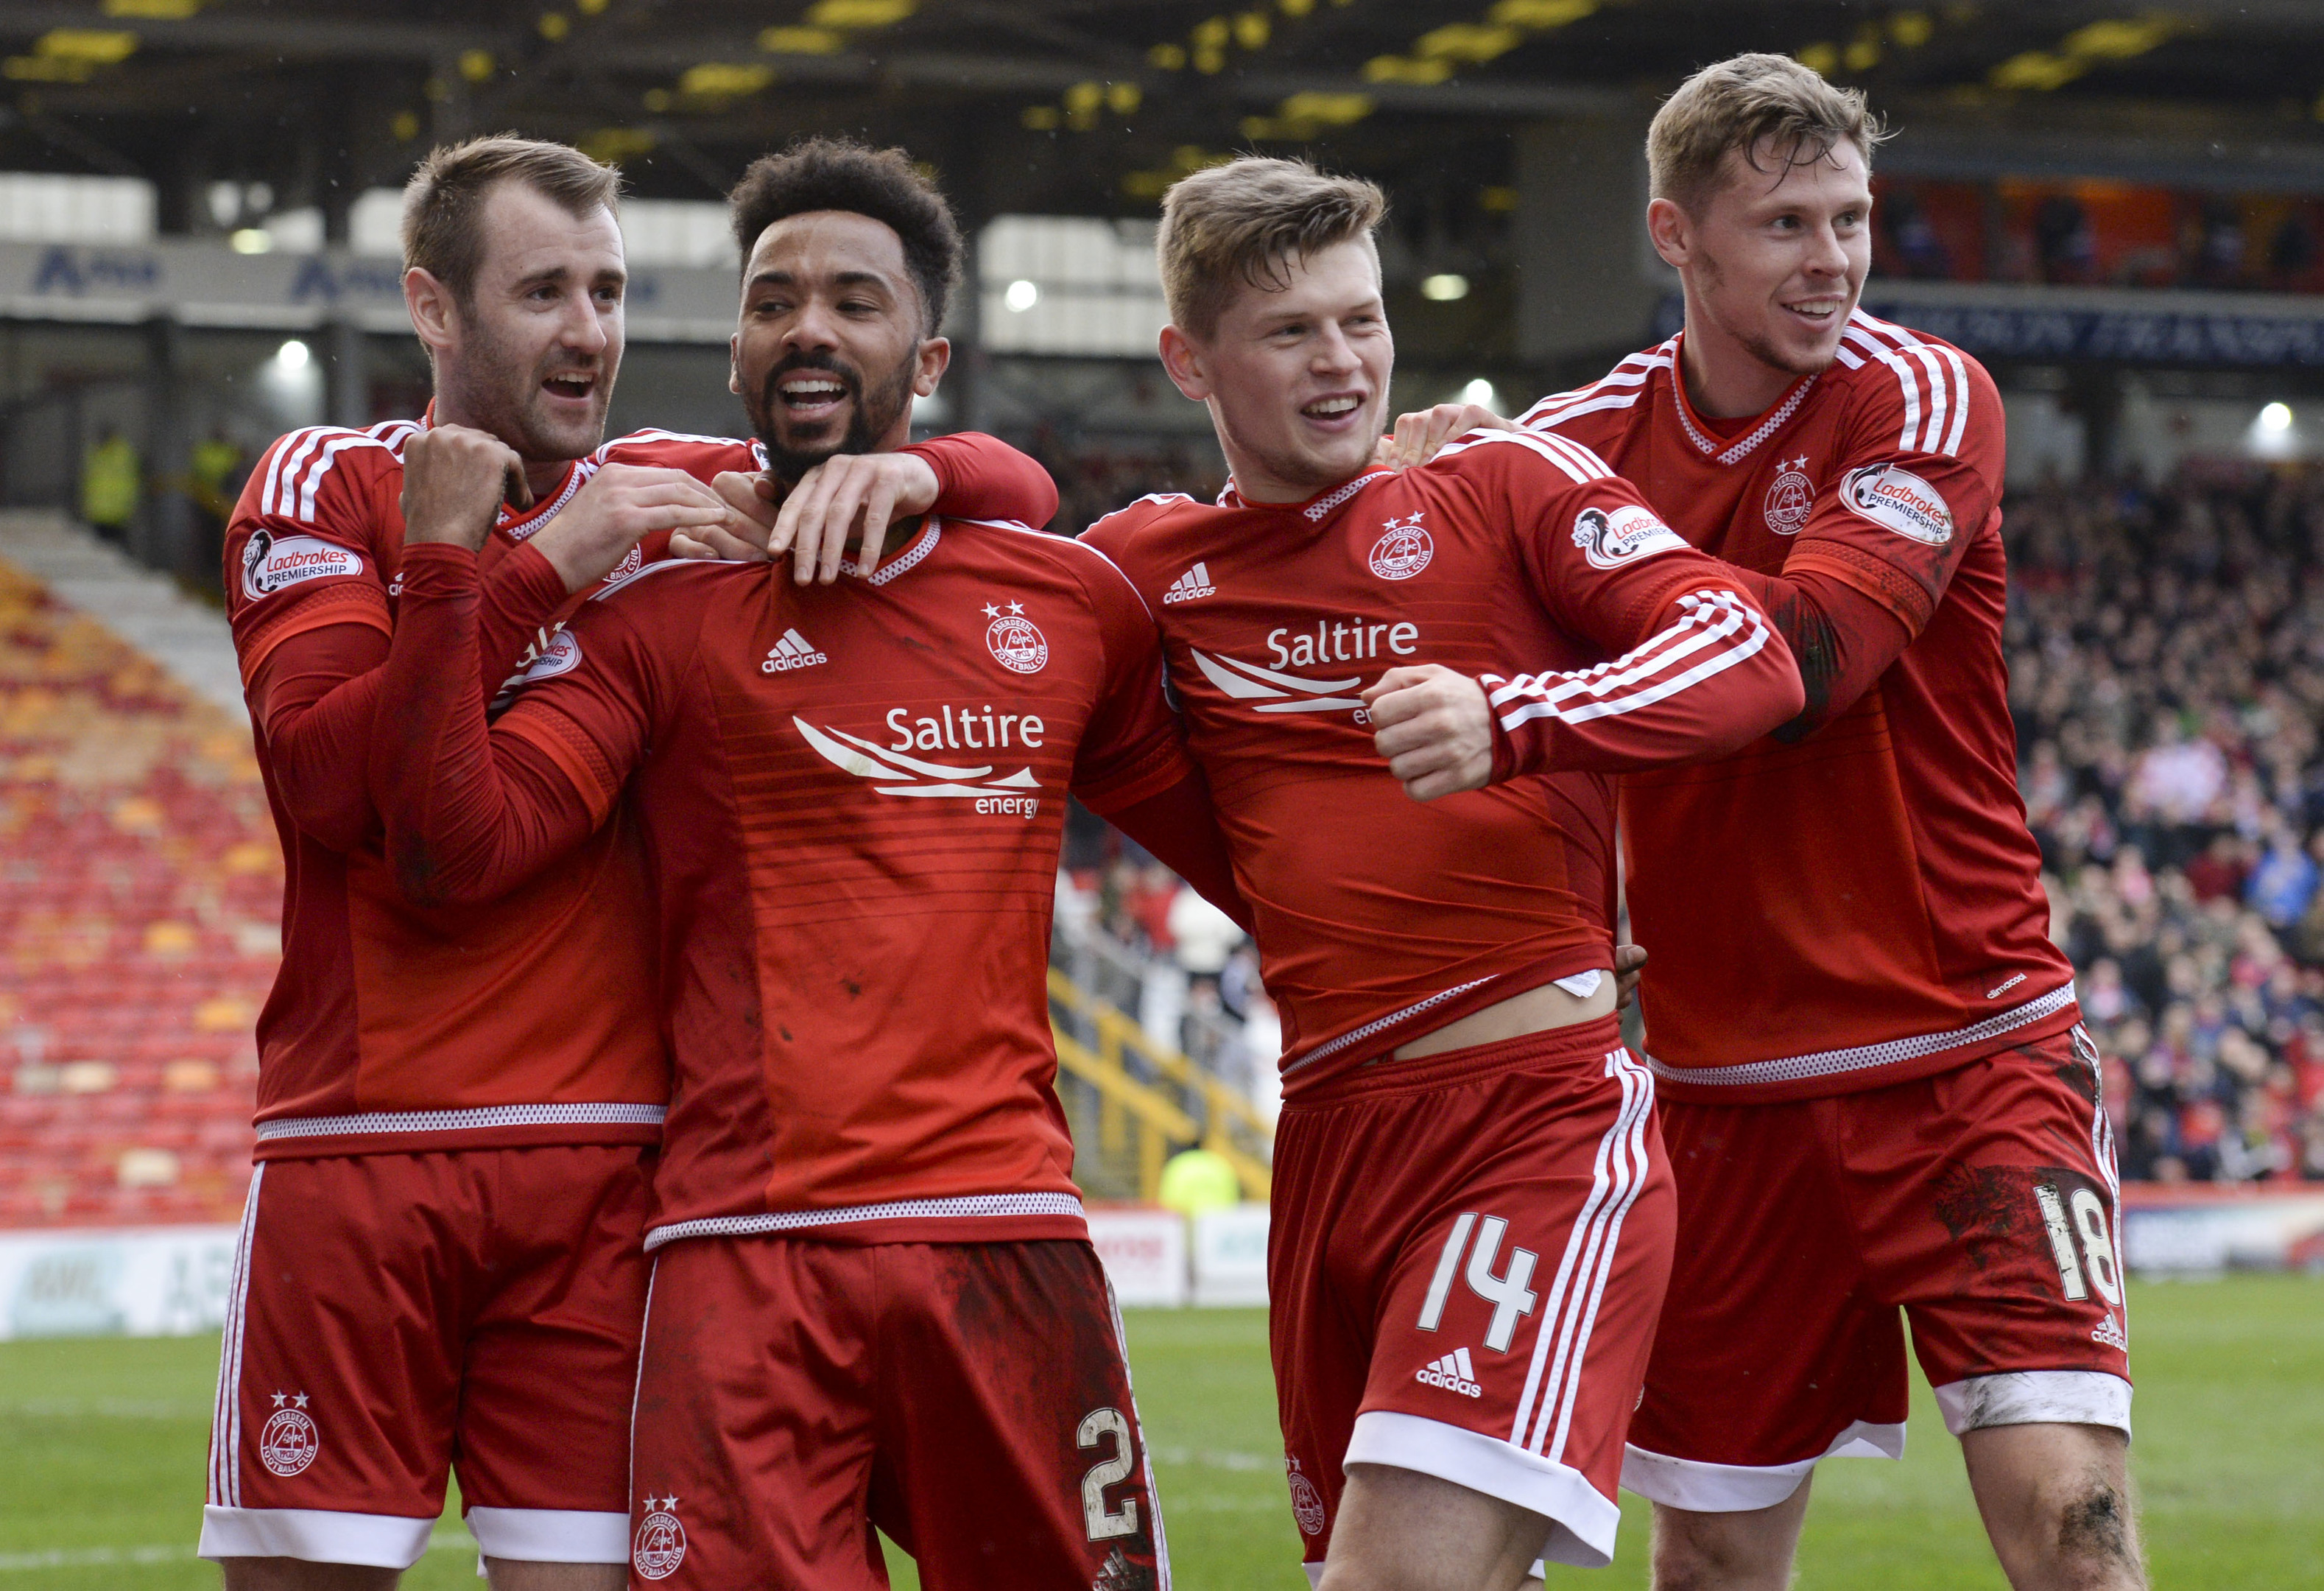 Shay Logan (2nd from left) is congratulated by team mates Niall McGinn, Cammy Smith and Simon Church after scoring Aberdeen's second goal